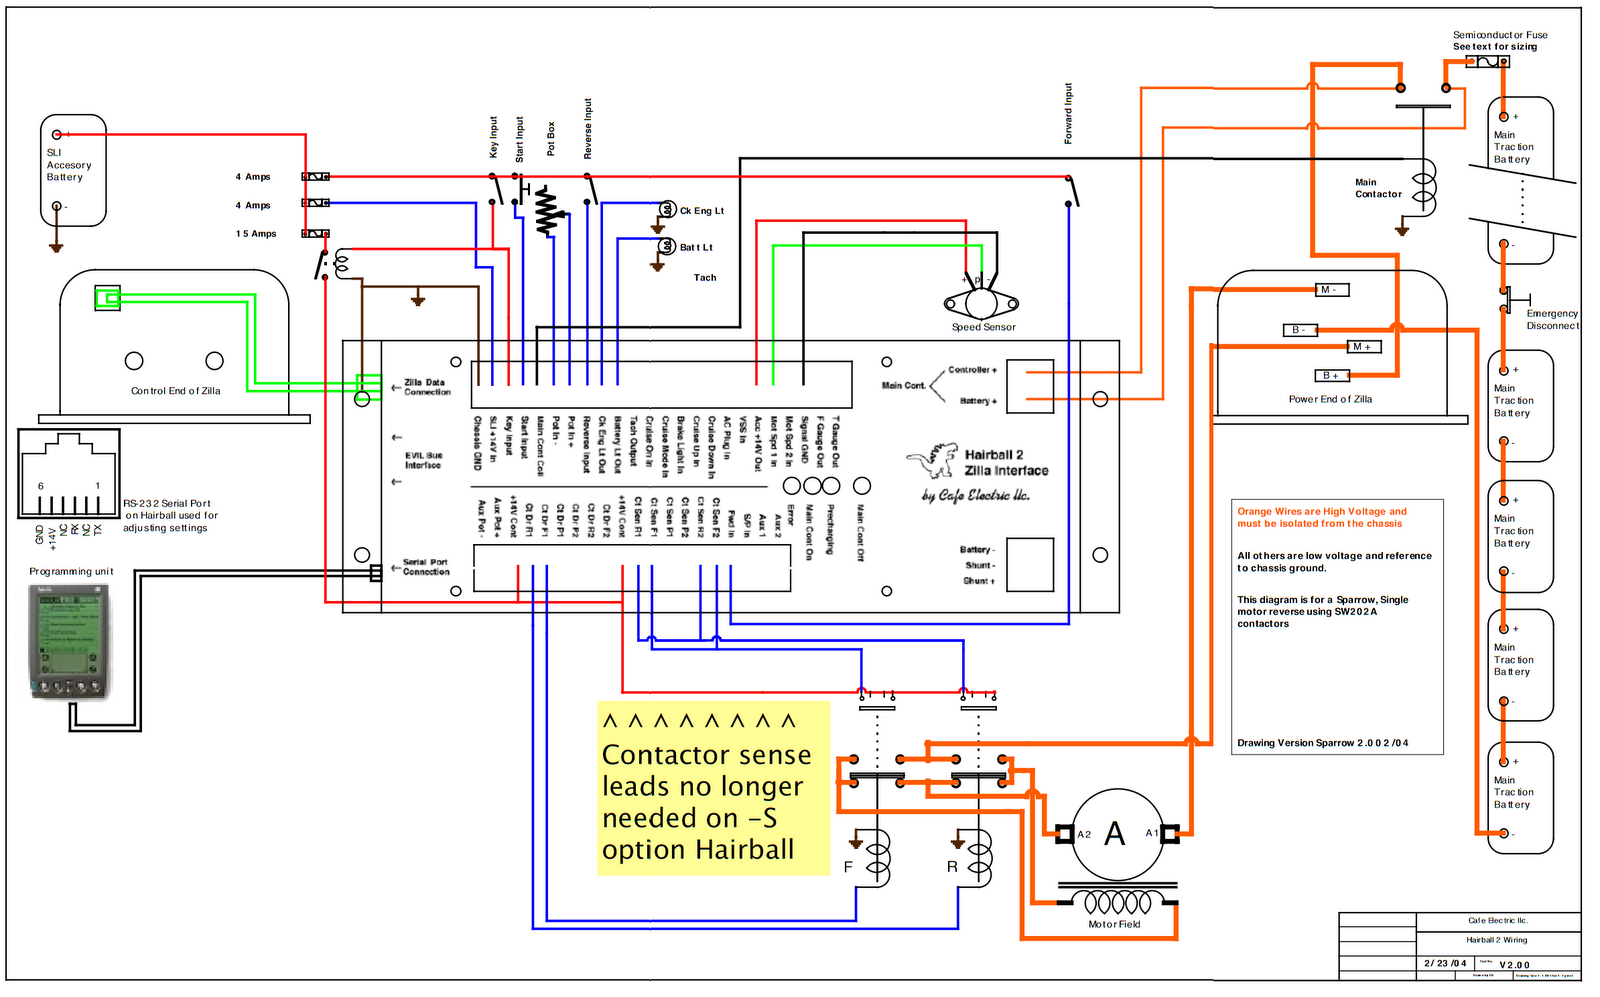 Wiring Diagram For Electric Scooters Electric Scooter Electrical Diagram Electricity